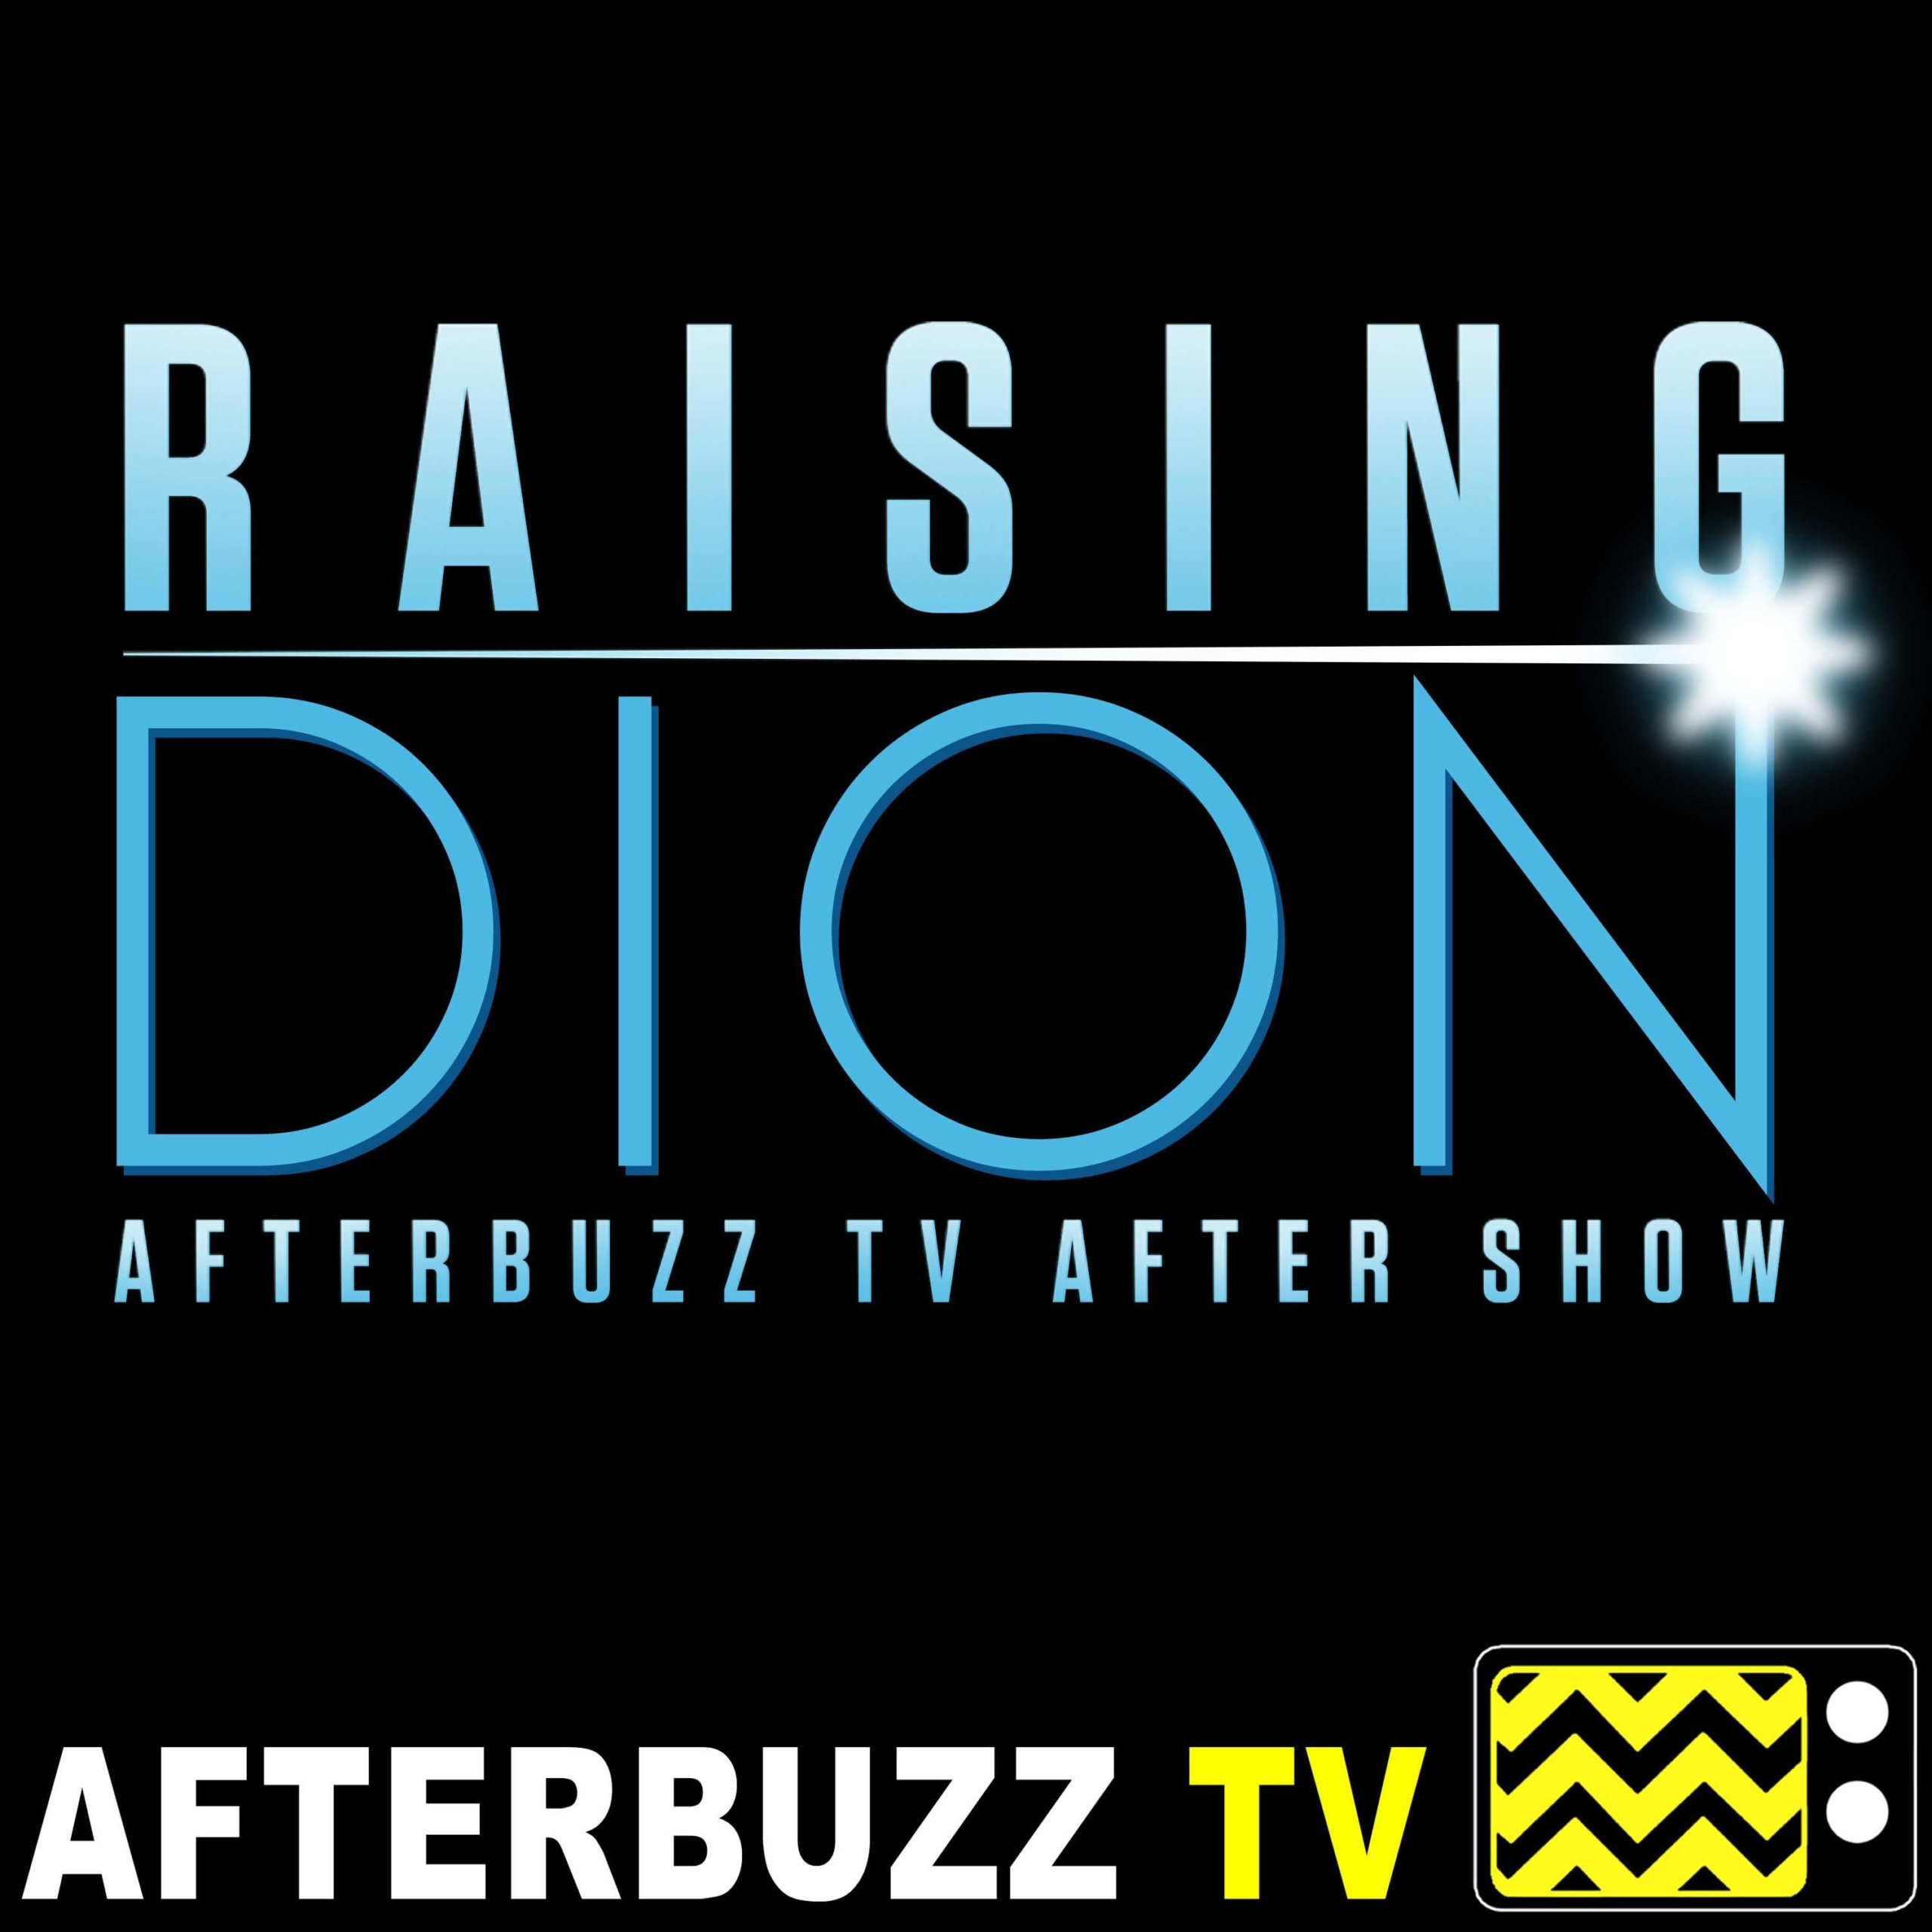 The Raising Dion Podcast